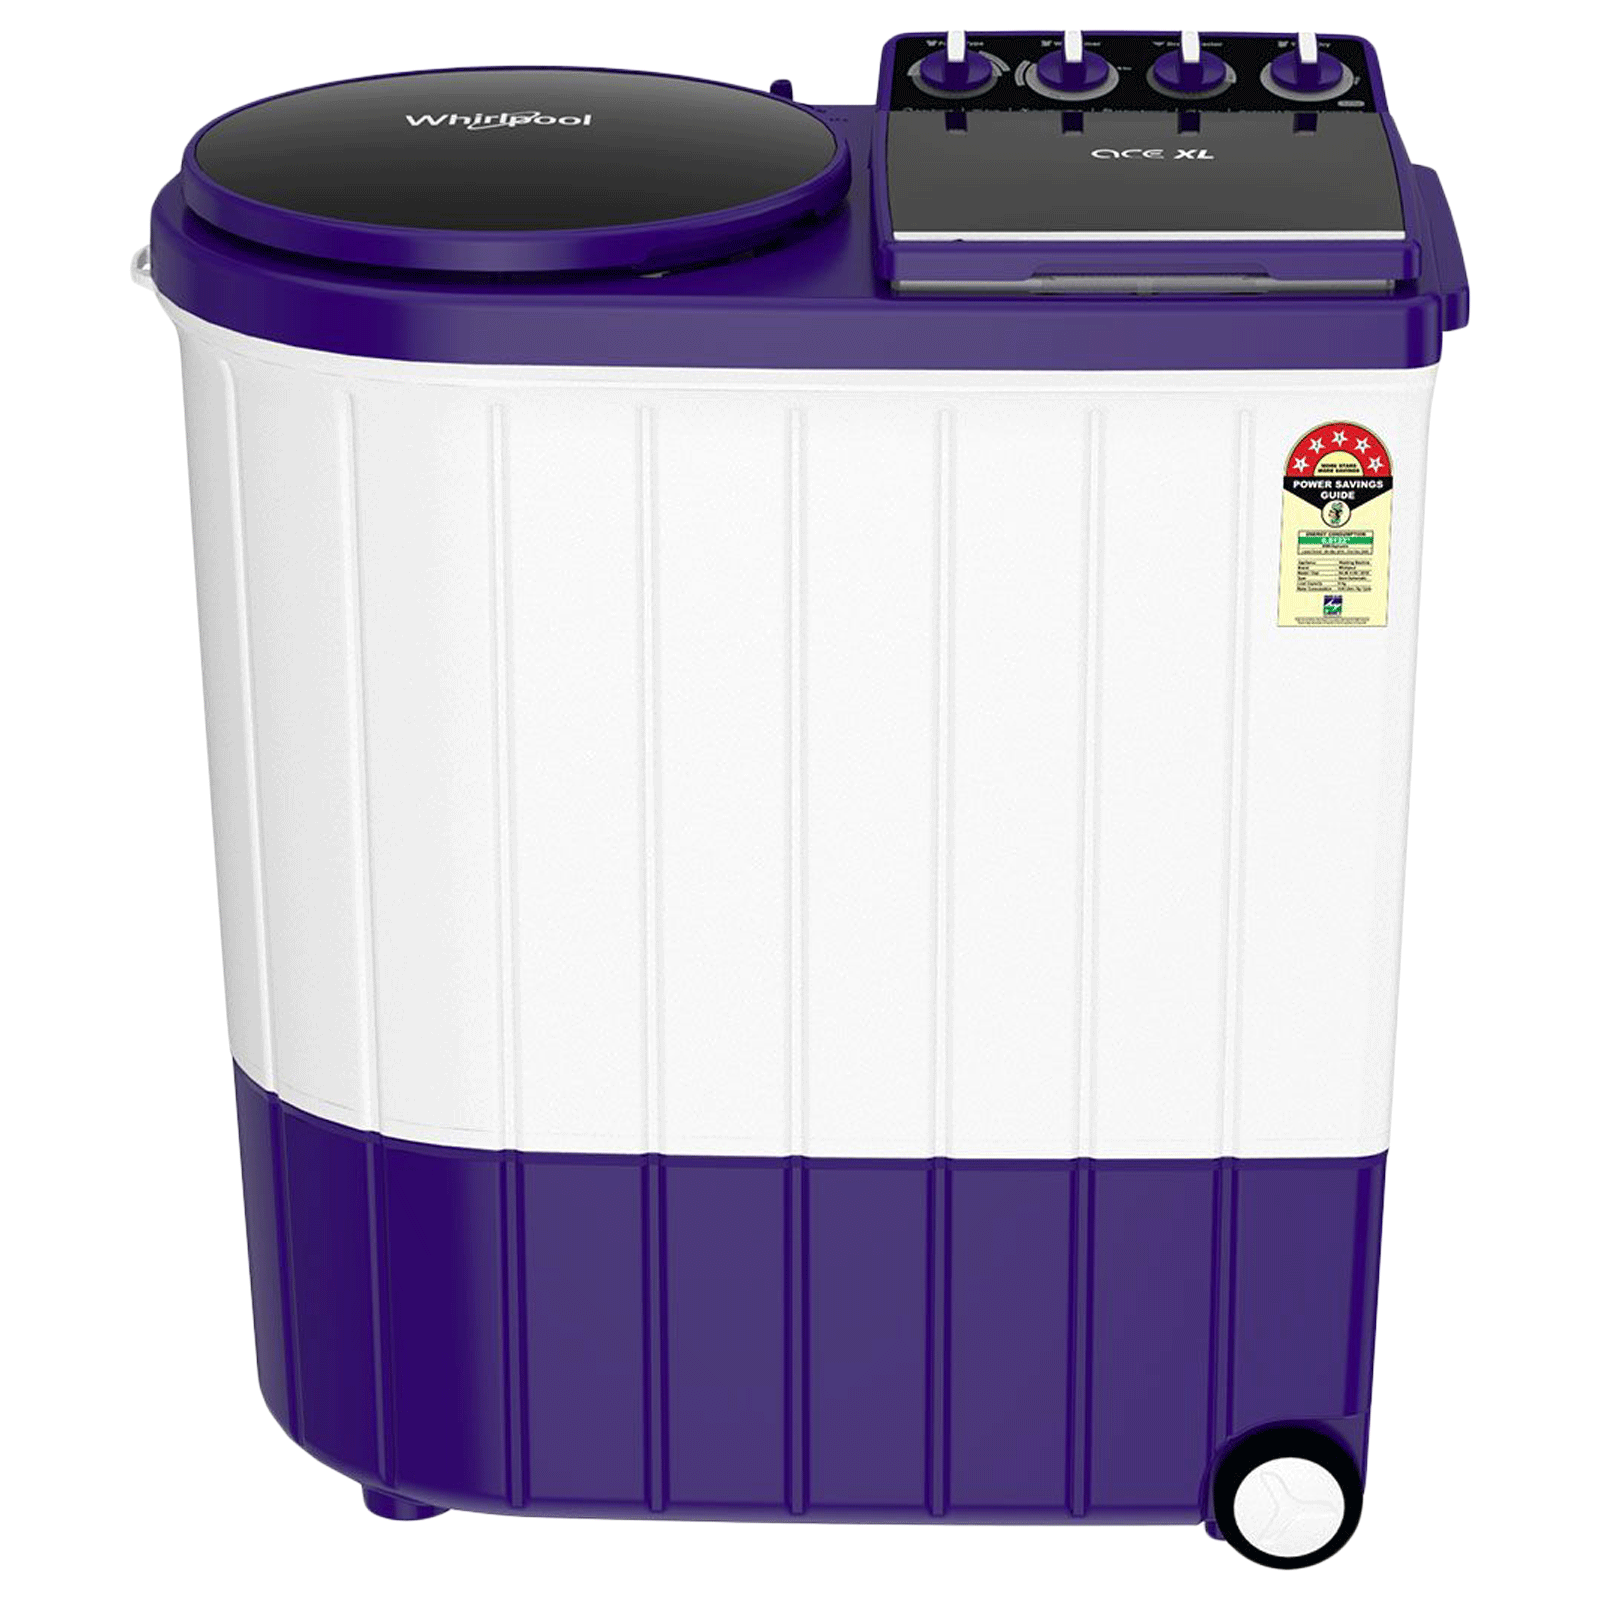 Whirlpool Ace Xl 9 kg 5 Star Semi-Automatic Top Load Washing Machine (Impeller Wash Technology, Royal Purple)_1